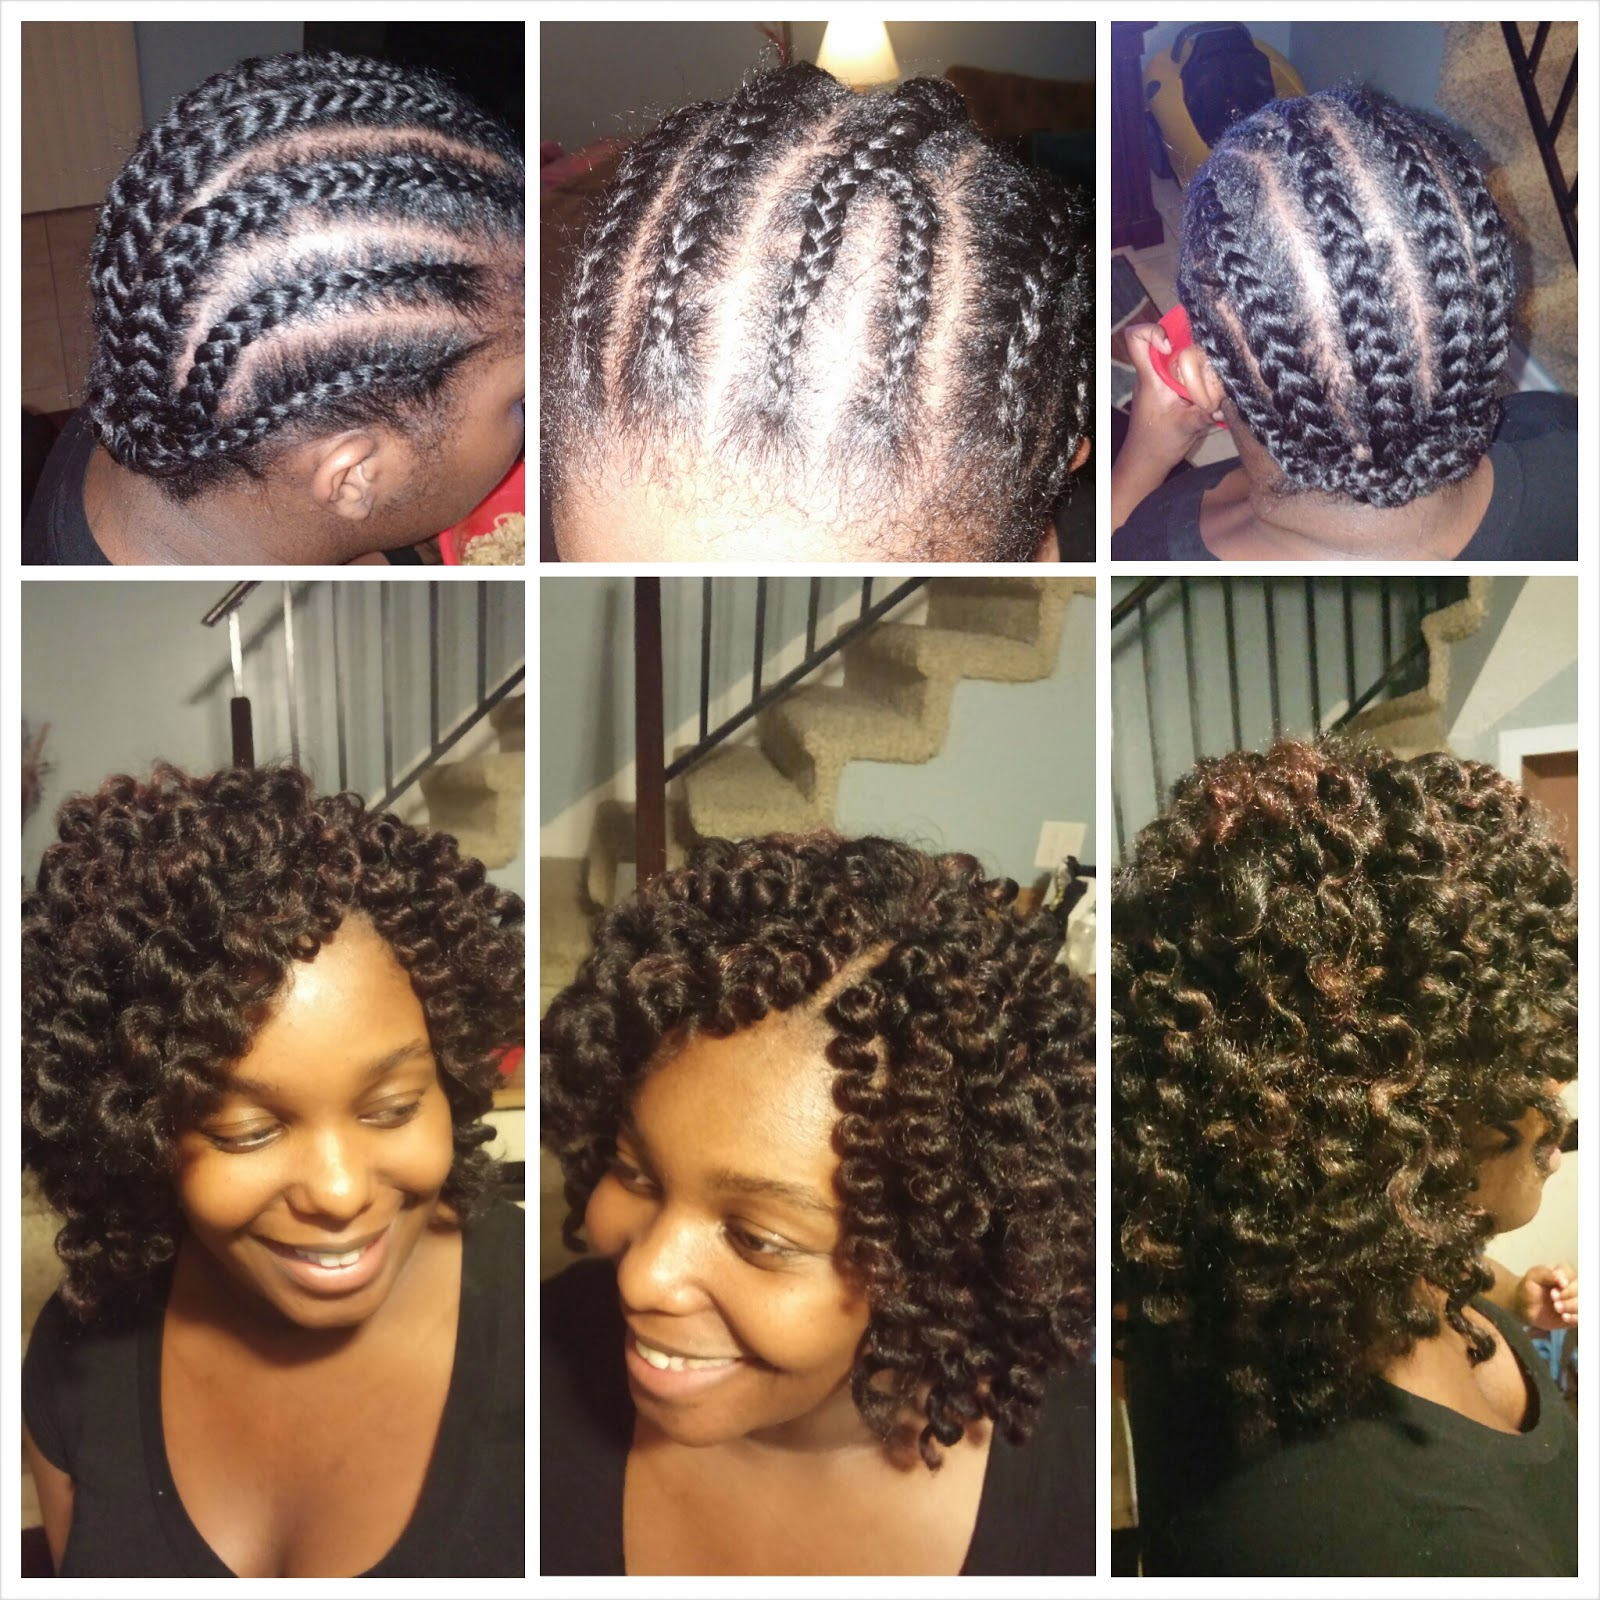 Crochet Hair Growth : ... Hair Journey....Lets Grow!: First Attempt! Crochet Braids/Twistout